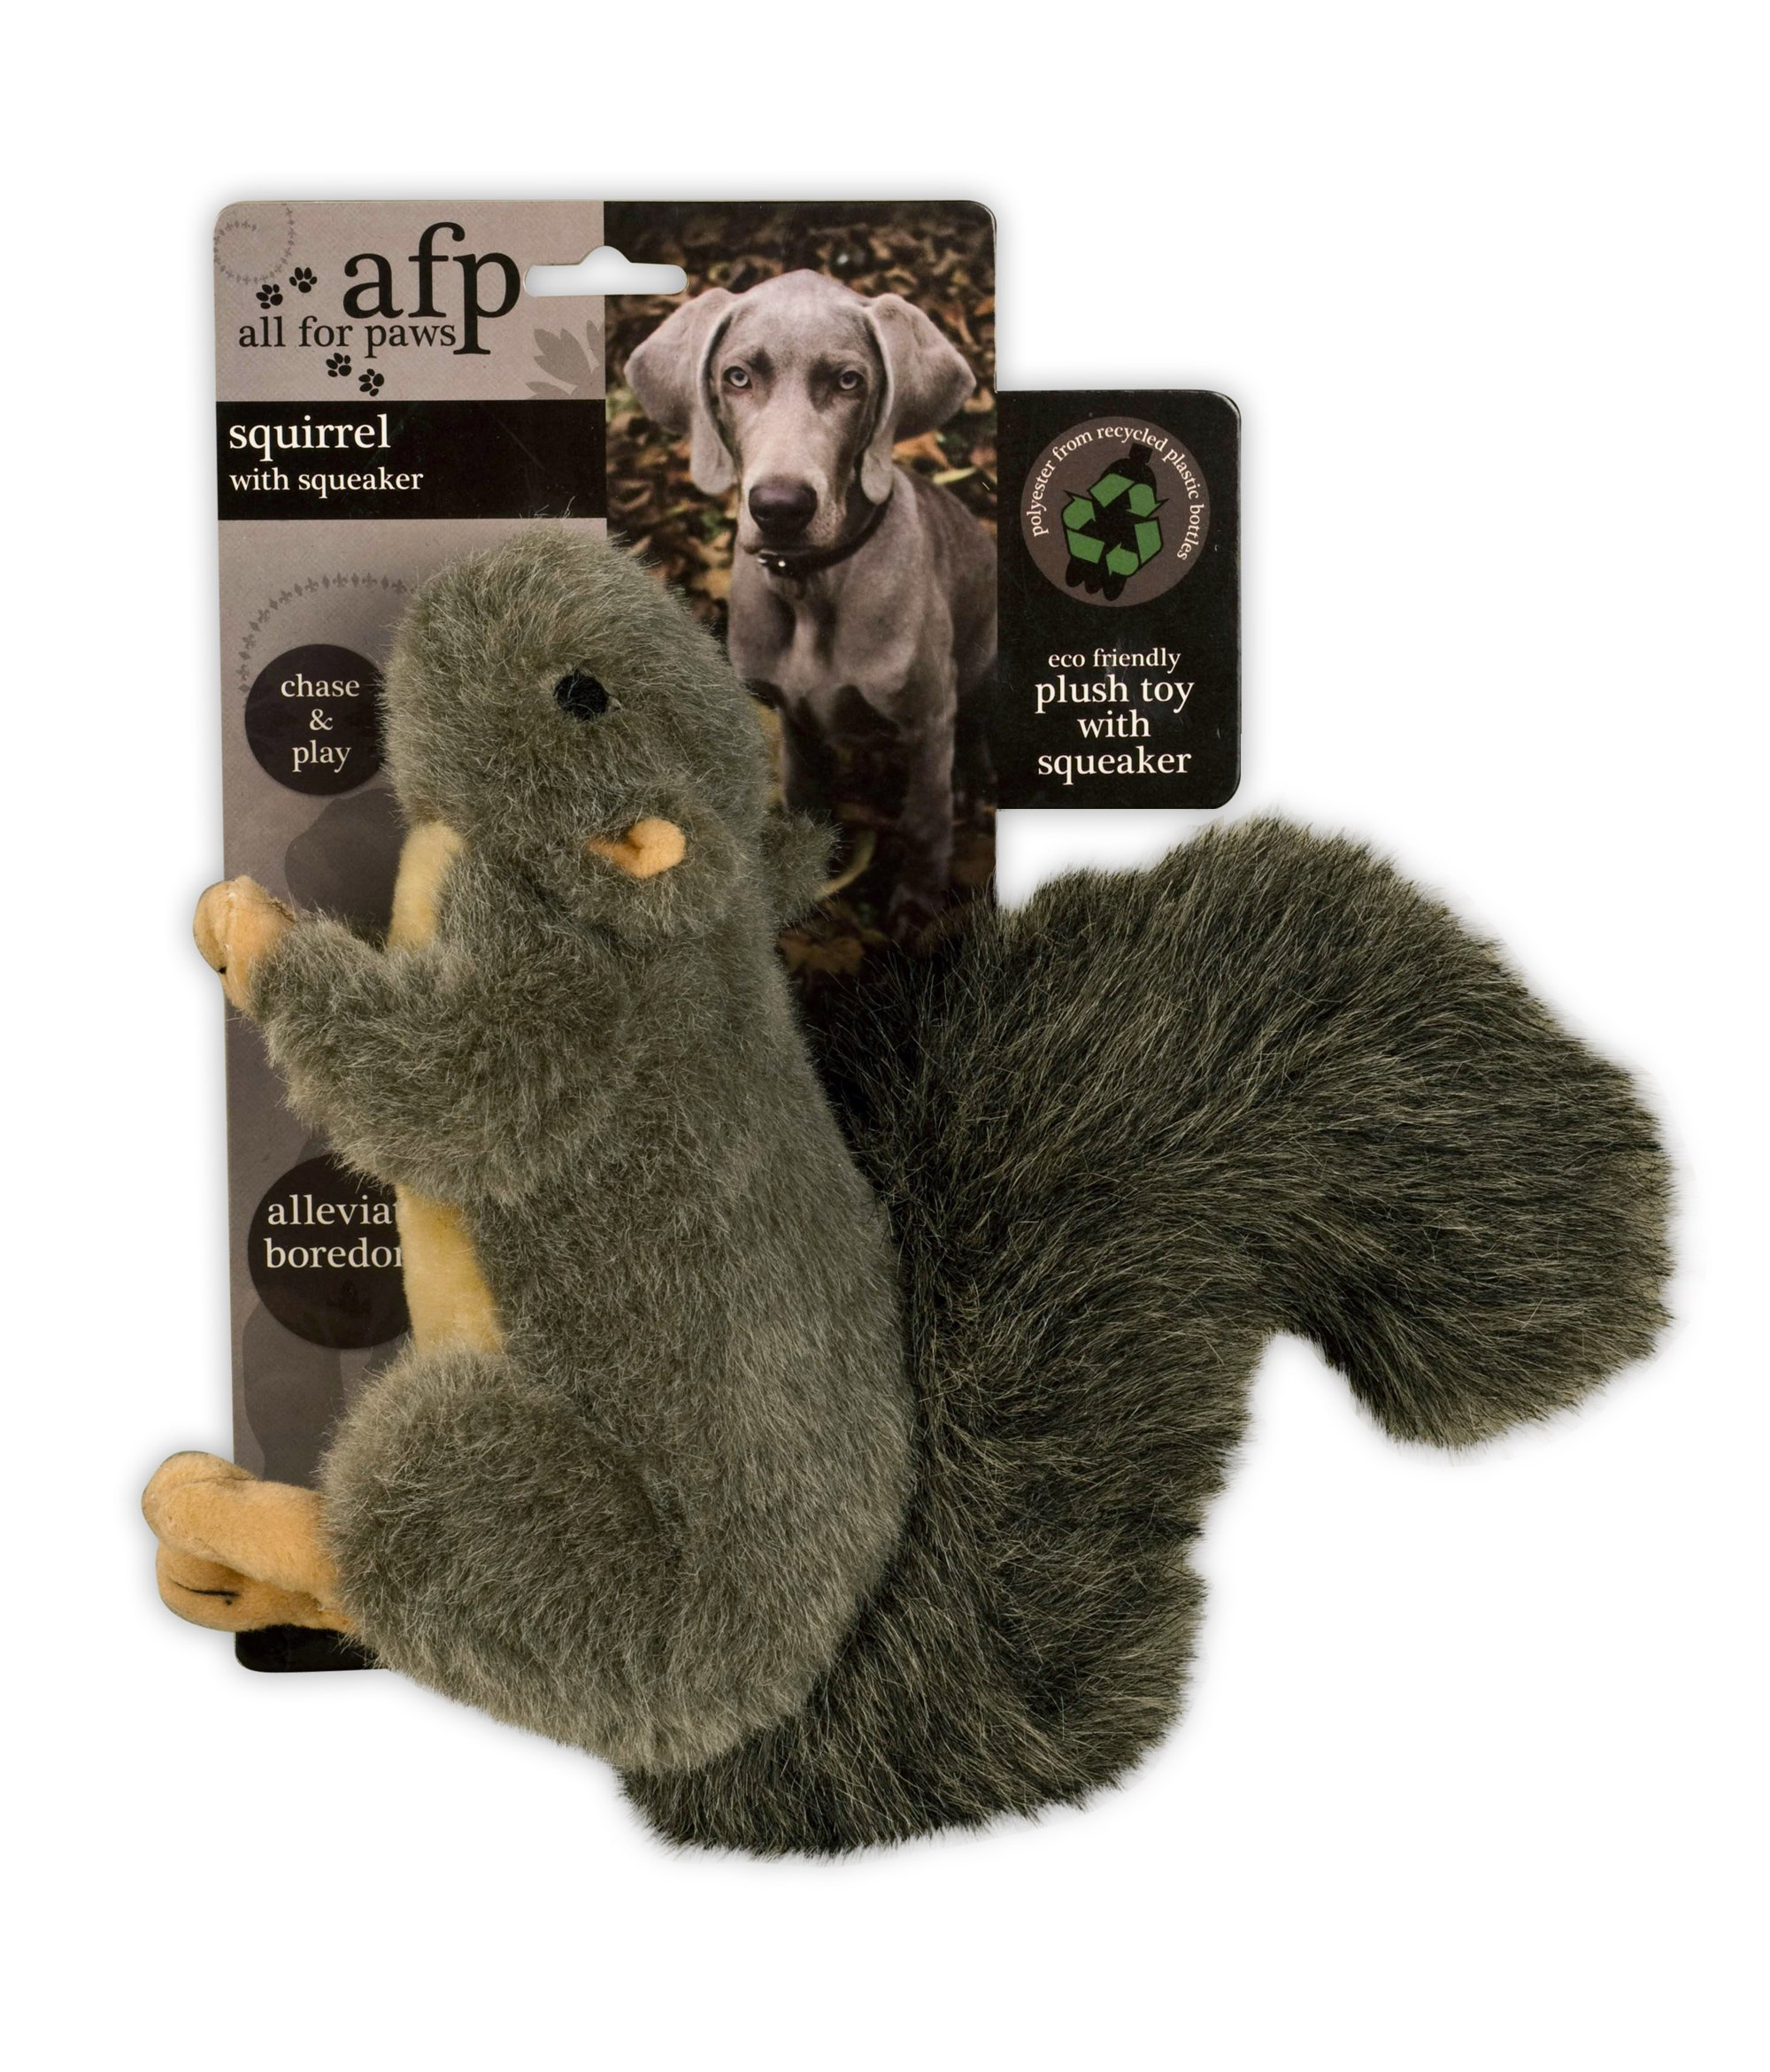 All for Paws Classic Squirrel Pet Toys, Large by ALL FOR PAWS